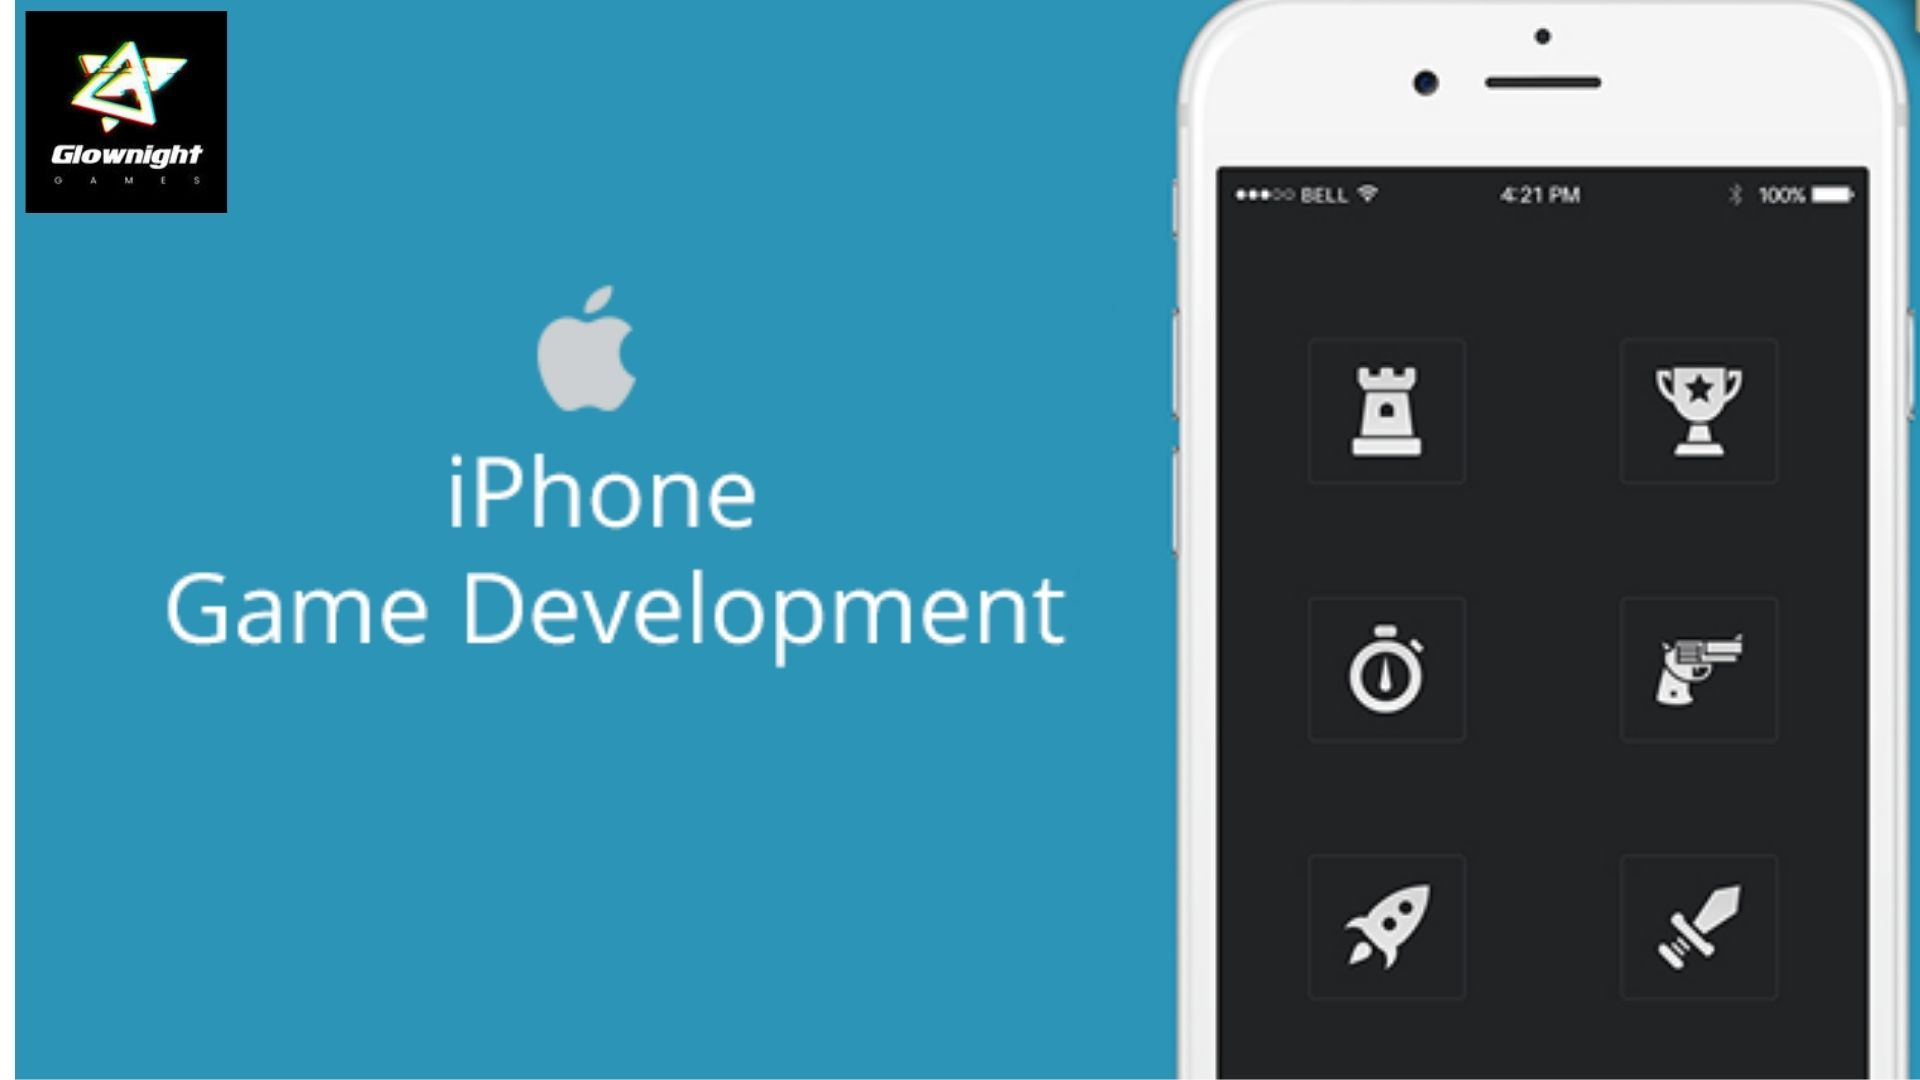 Top iOS Game Development Company - Glownight Games